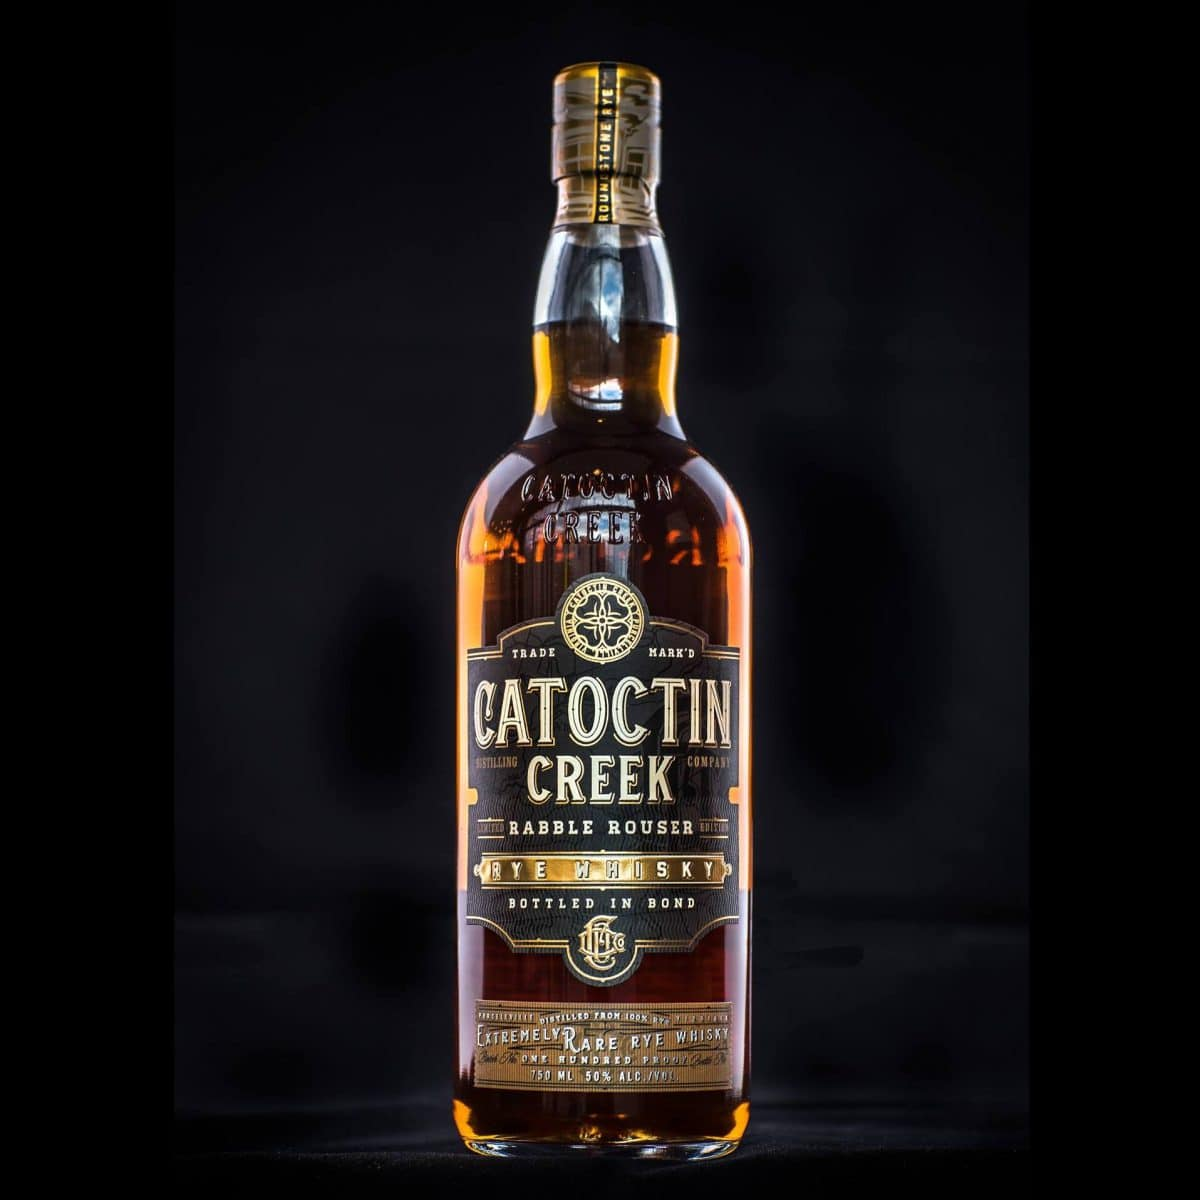 Catoctin Creek también lanzará su Rabble Rouser Rye Whiskey